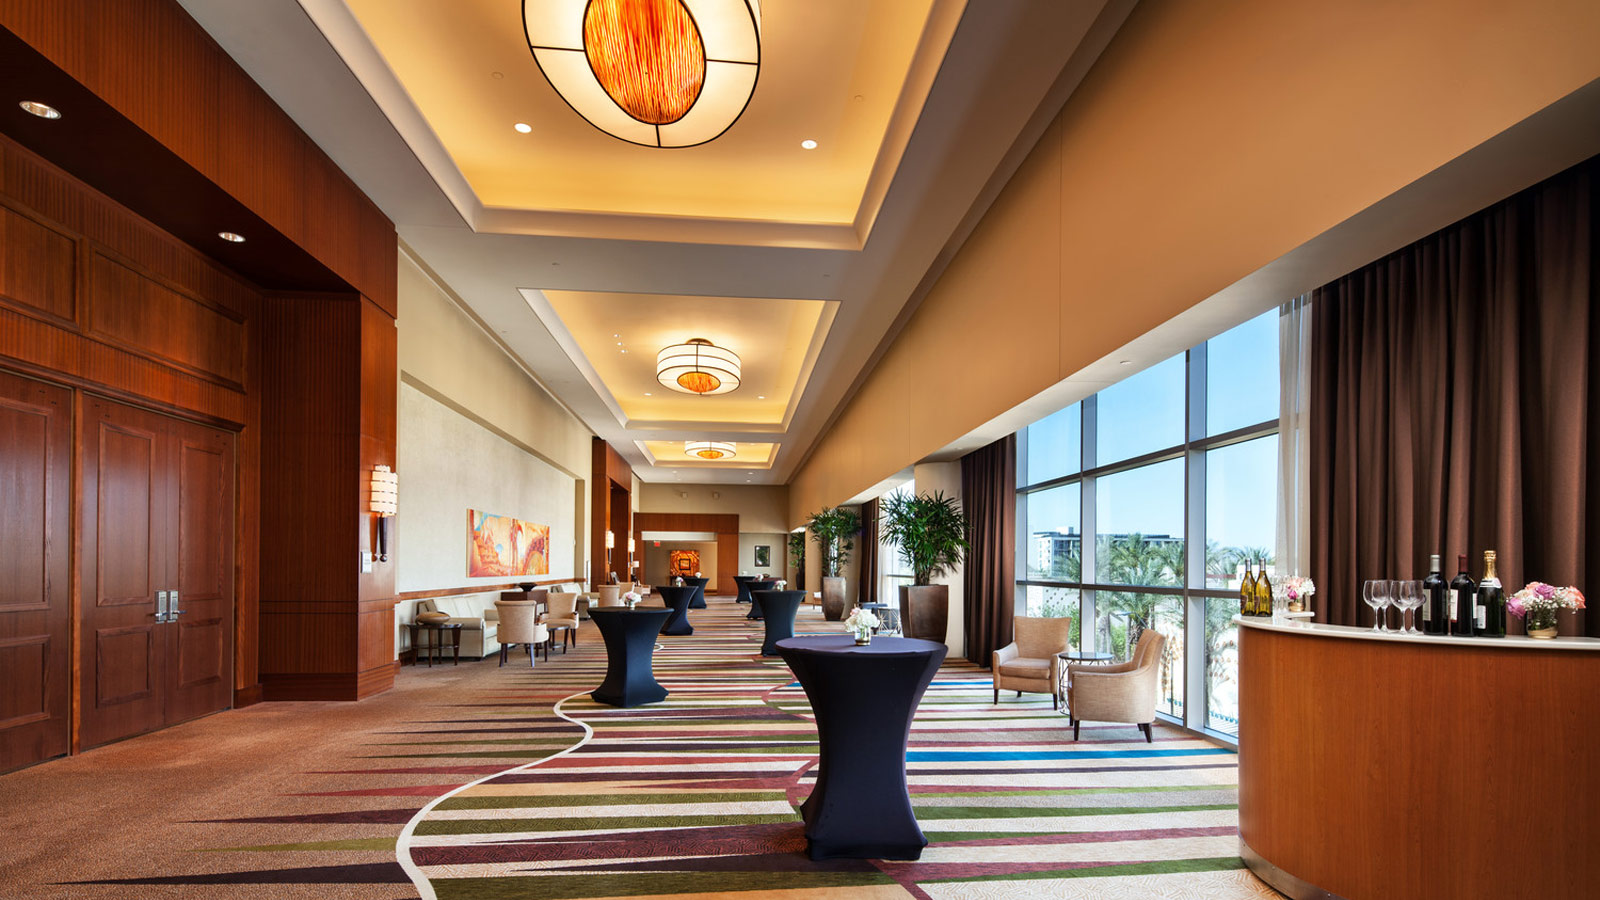 Sheraton Phoenix Downtown Hotel - Phoenix wedding space